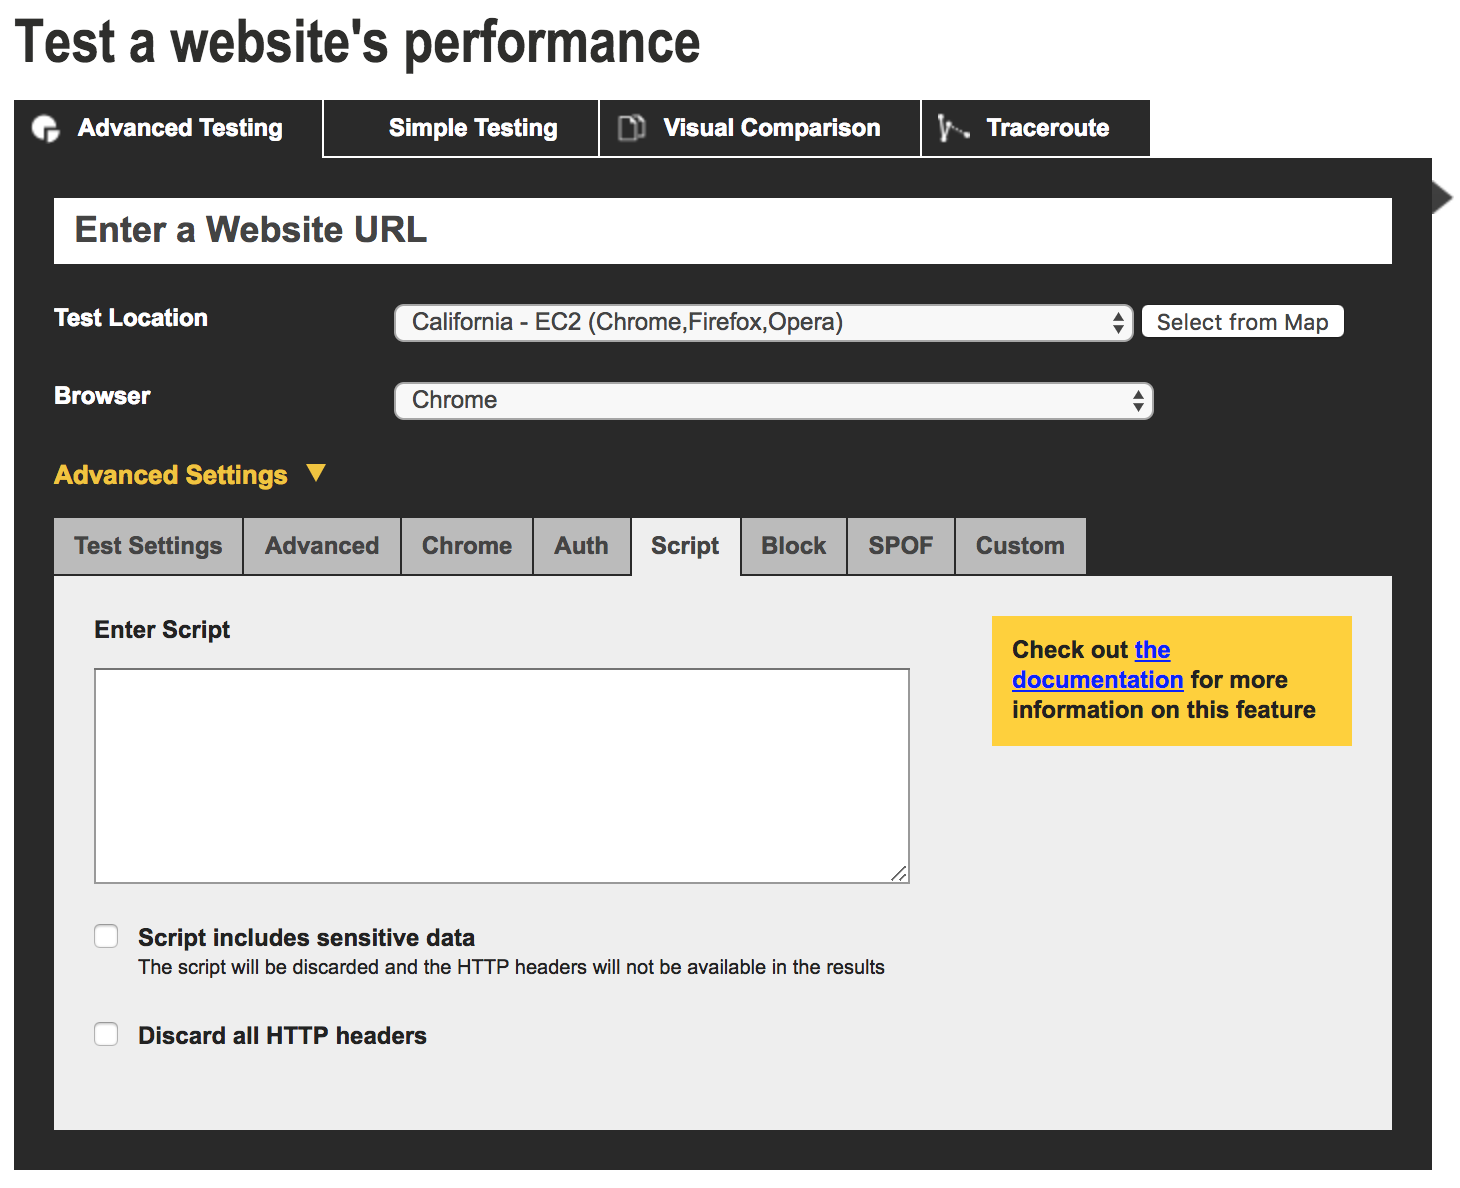 A screenshot of WebpageTest showing the 'Advanced Testing' tab